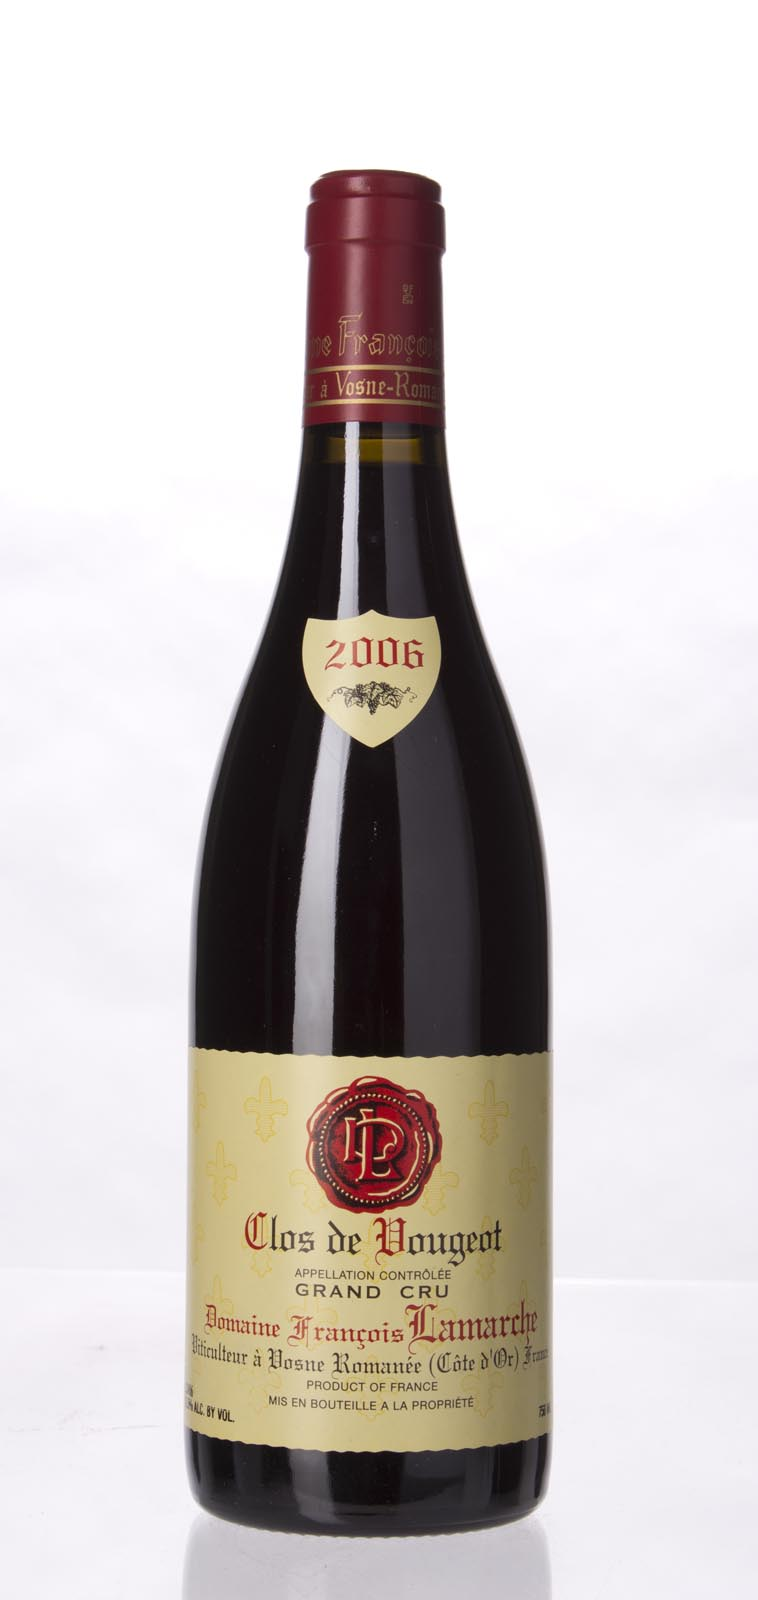 Domaine Francois Lamarche Clos Vougeot 2006, 750mL (ST89-92) from The BPW - Merchants of rare and fine wines.